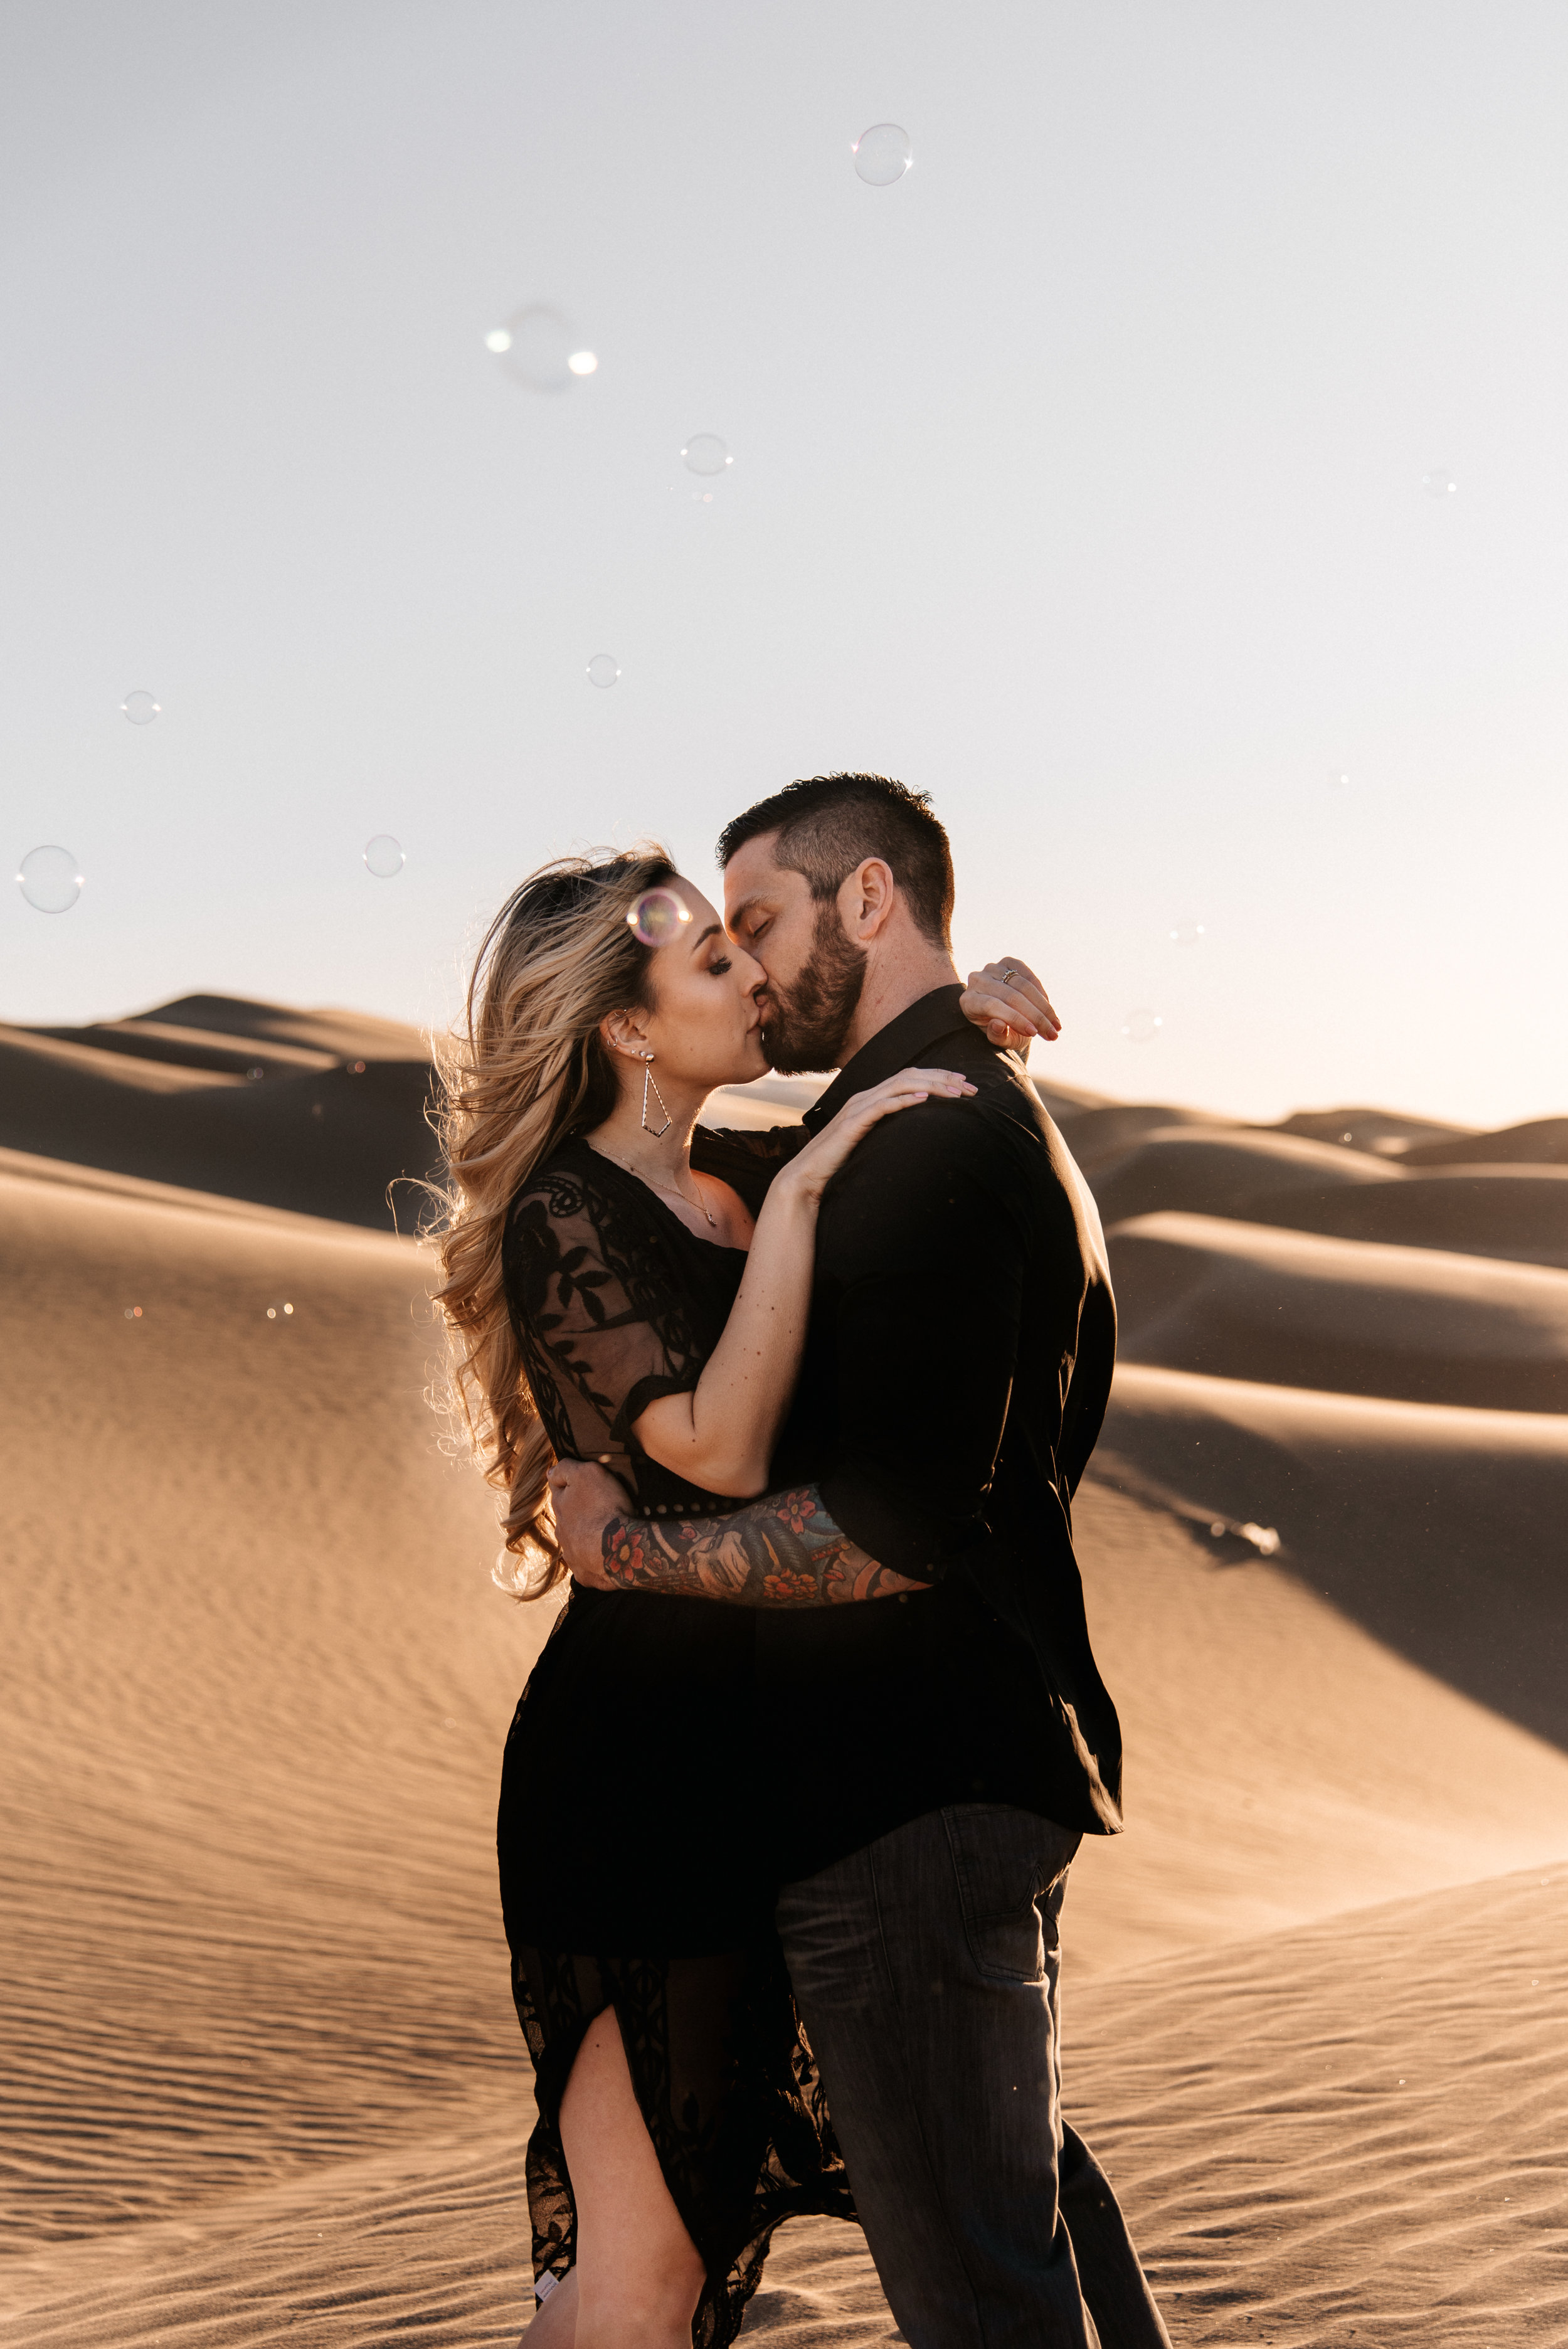 SamErica Studios - Modern San Diego Engagement Photographer - Adventure Engagement Session in Glamis Sand Dunes California-39.jpg